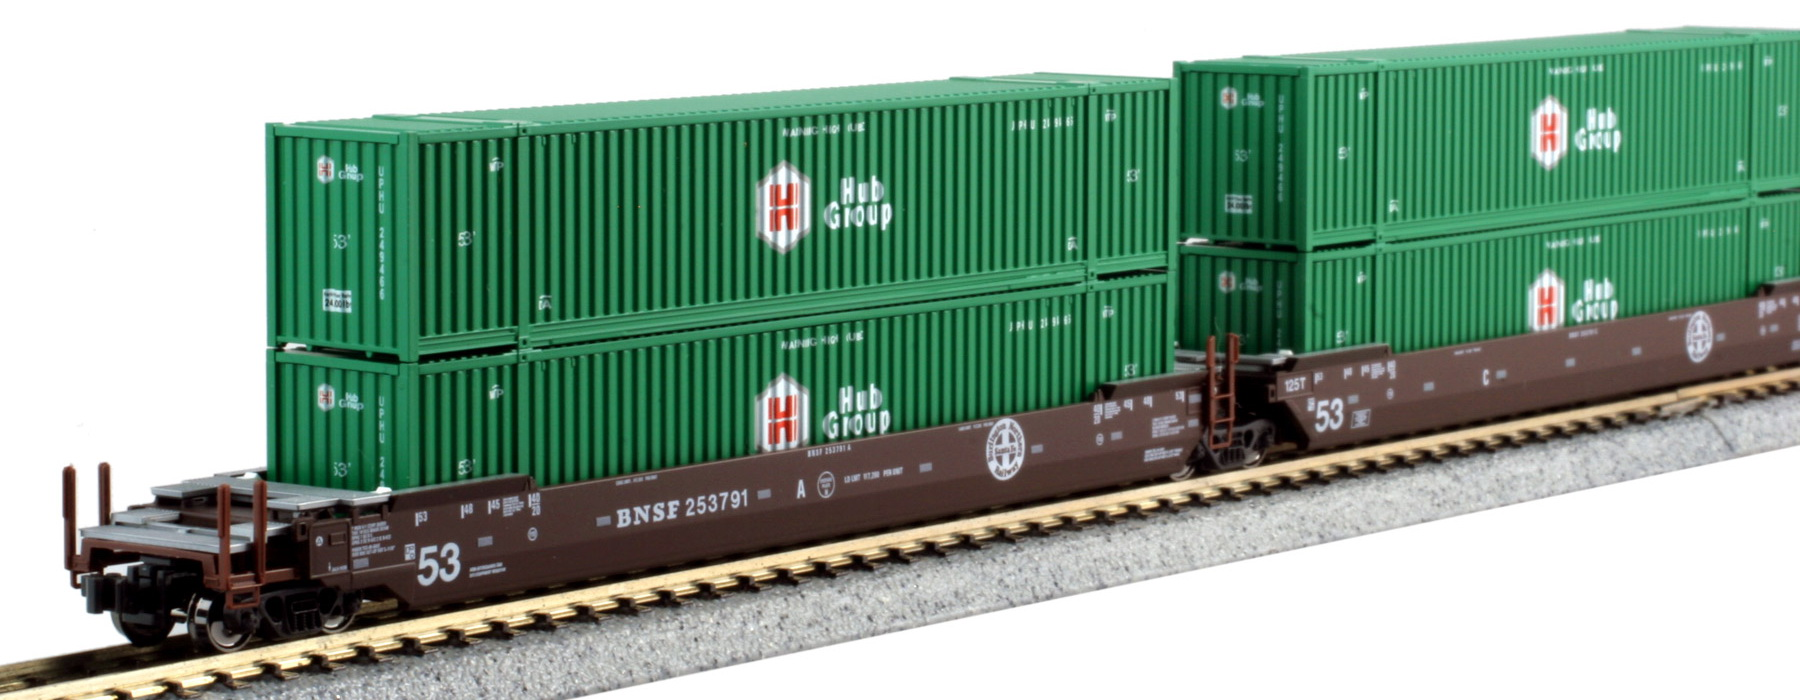 N Scale - Kato USA - 106-6177 - Container Car, Articulated Well, Gunderson Maxi-Stack IV - Burlington Northern Santa Fe - 253791